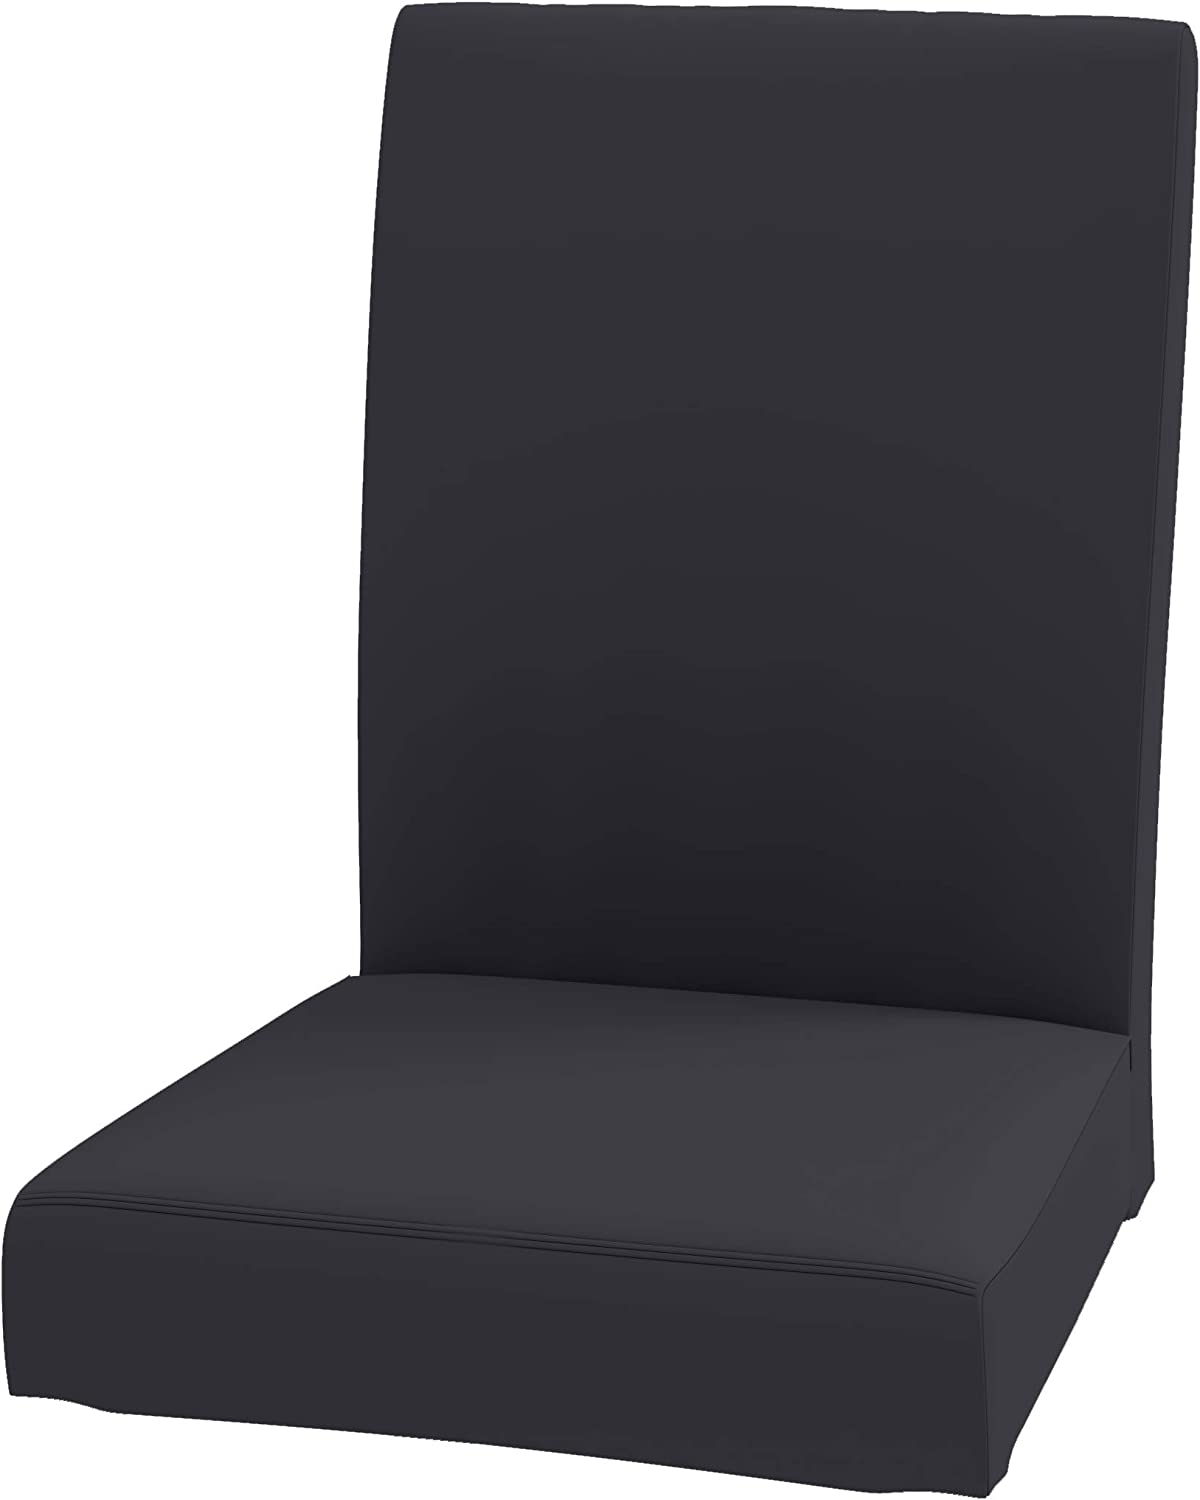 """The Durable Henriksdal Chair Cover Width: 21.2"""" Replacement is Custom Made for IKEA Dining Chair Cover Or Slipcover (Polyester Flax Dark Gray)"""